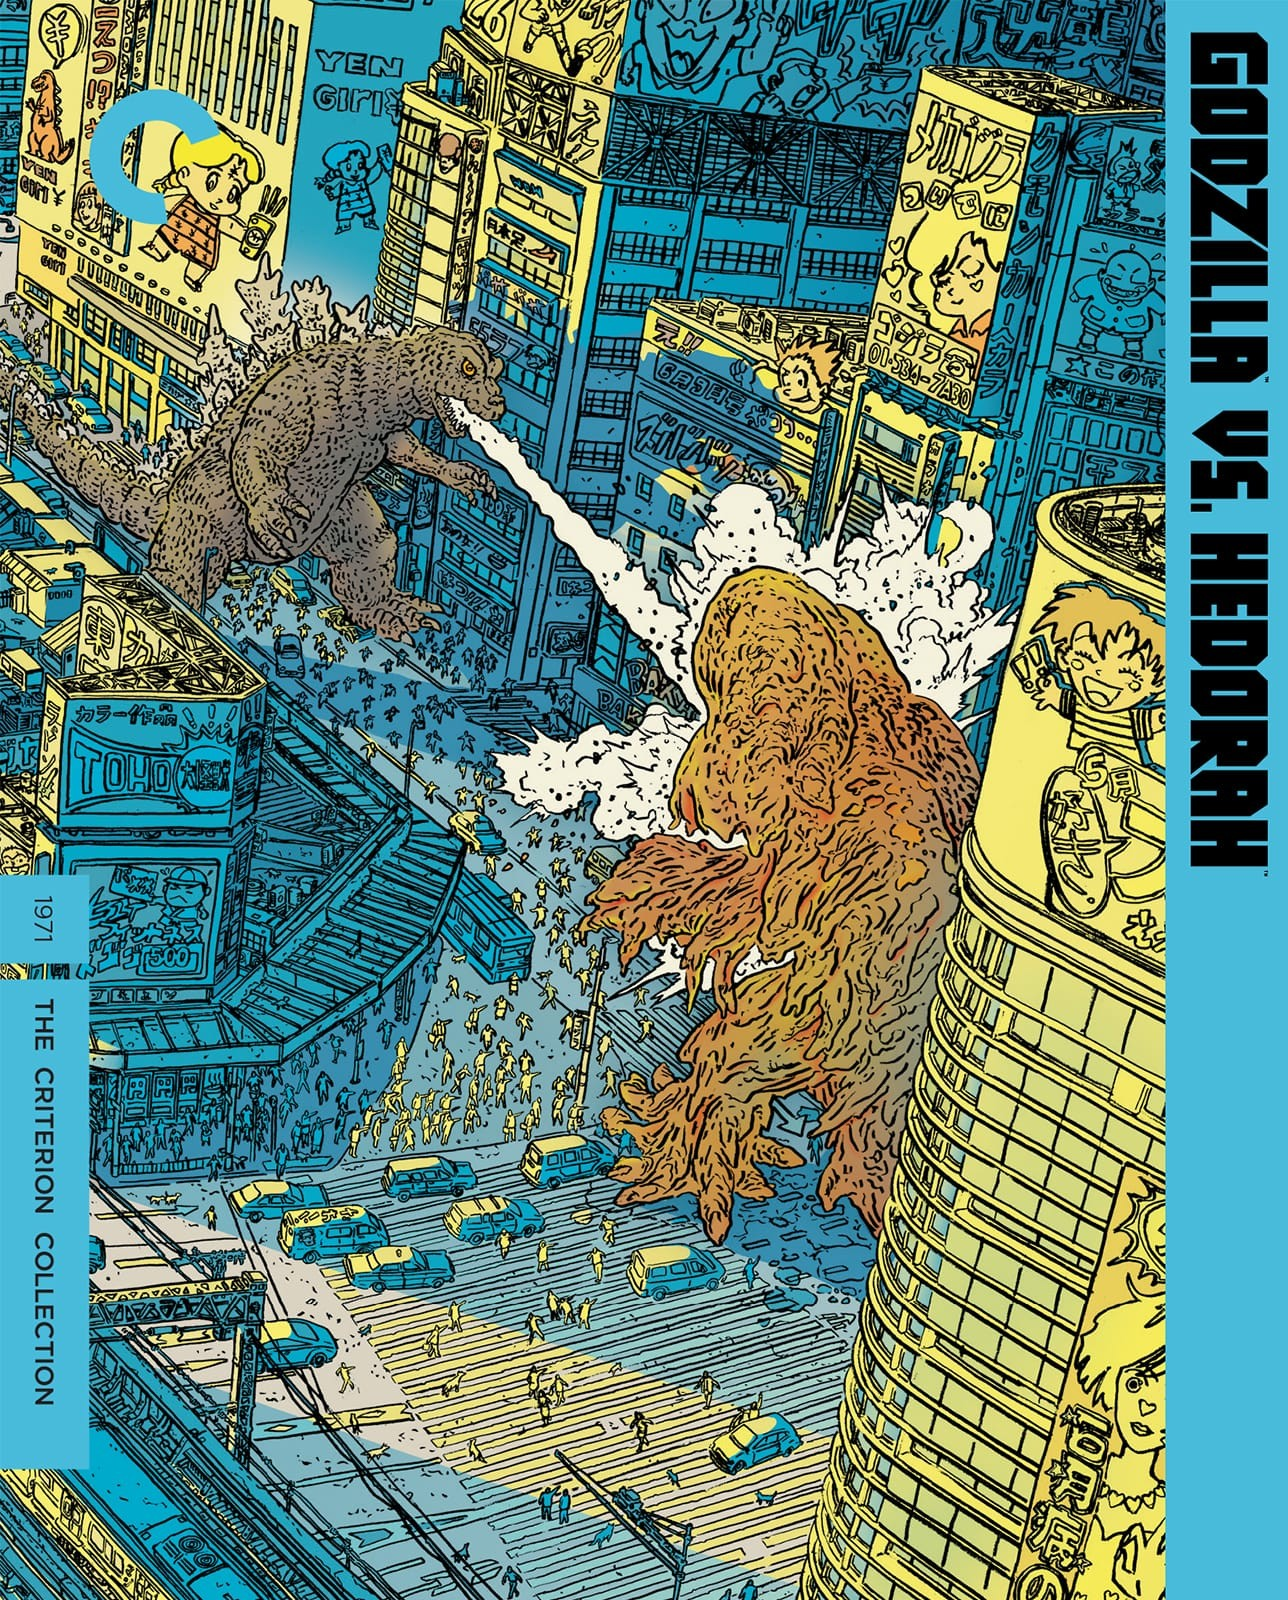 Godzilla vs. Hedorah (1971) | The Criterion Collection